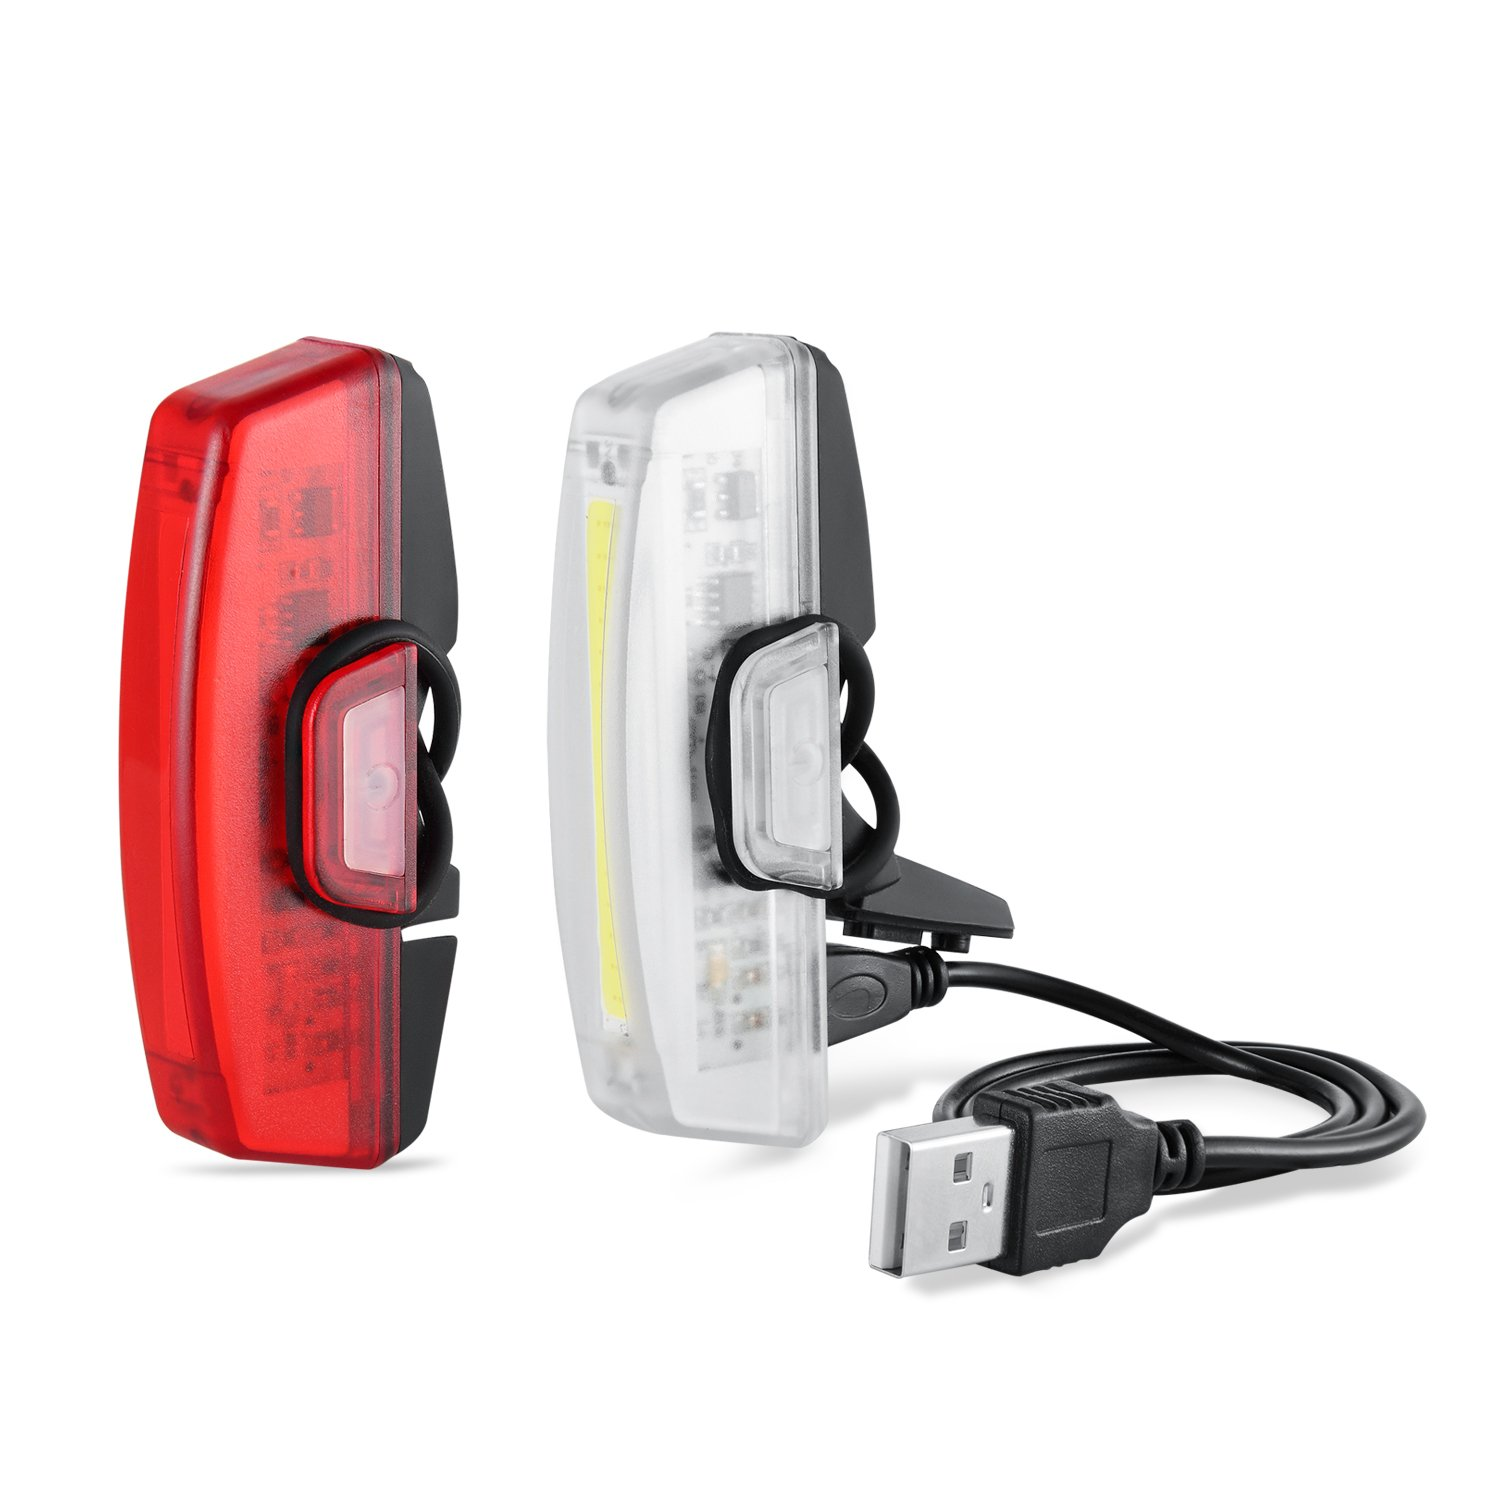 for driven lighting classic dynamo led lights cycles taillight bertin bike conversion